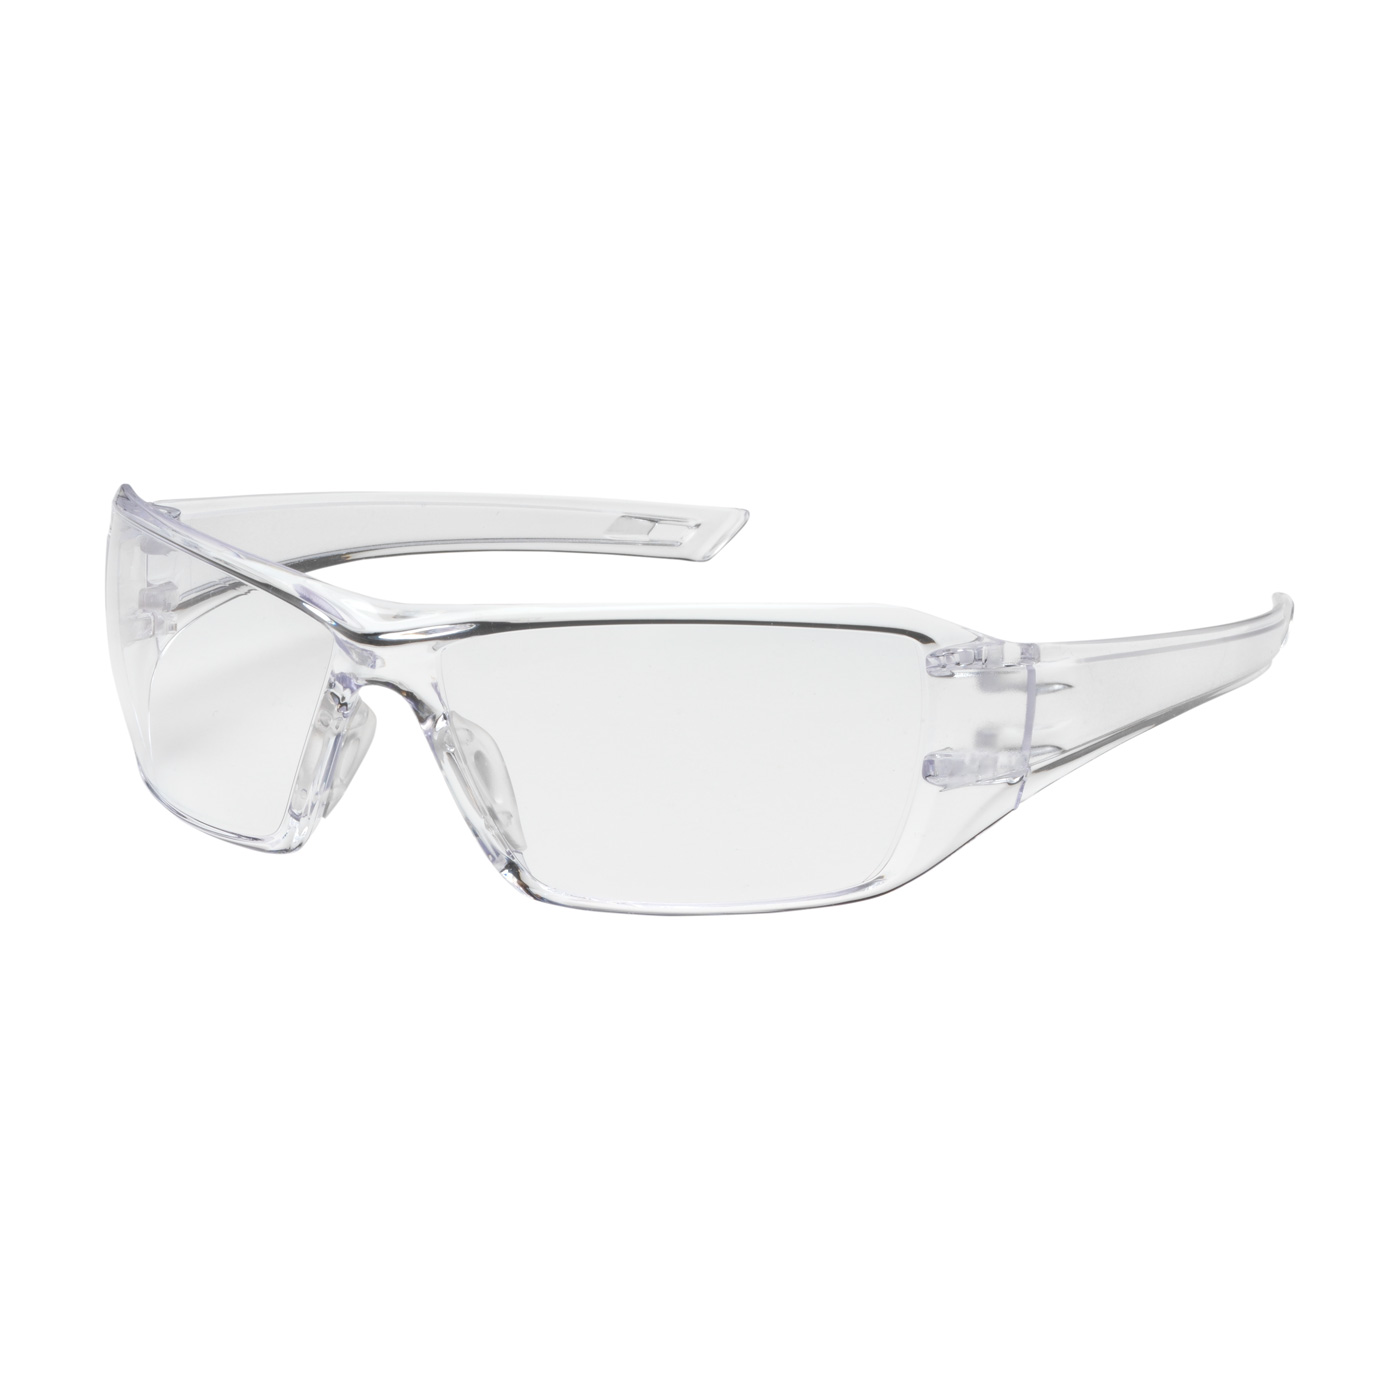 Captain Rimless Safety Glasses with Clear Temple, Clear ...